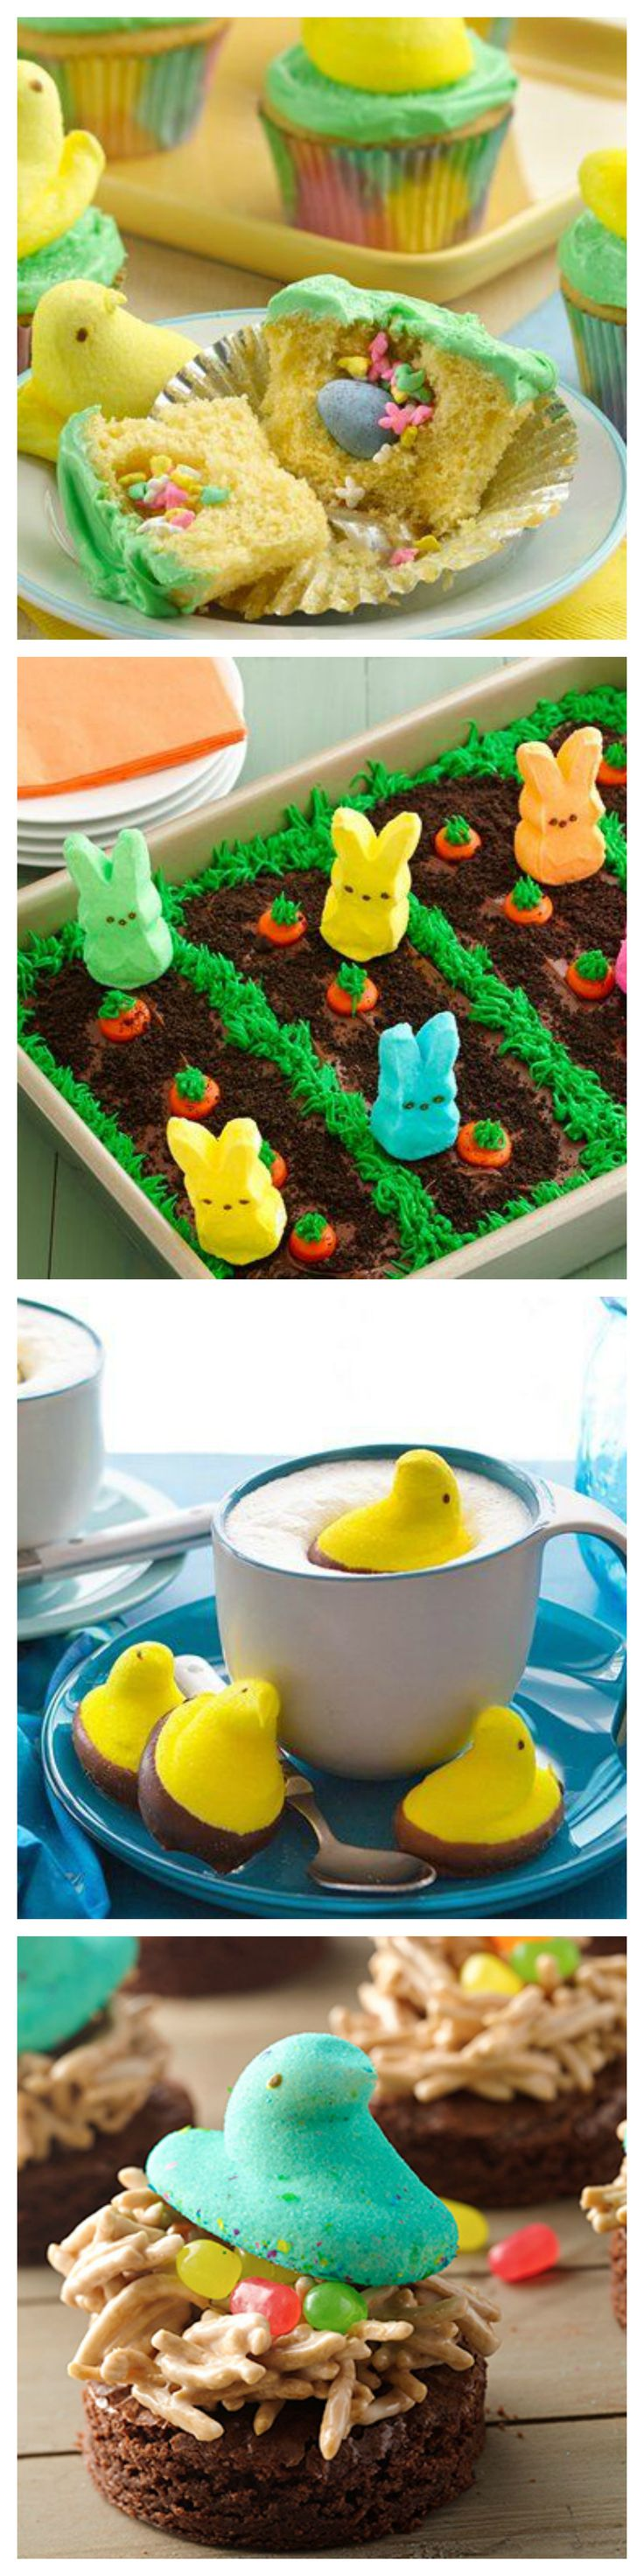 6 Peeps Treats To Make You Feel Like a Kid Again. PEEP these dessert and cocktail recipes that will have you feeling like a kid again (no Easter basket required).